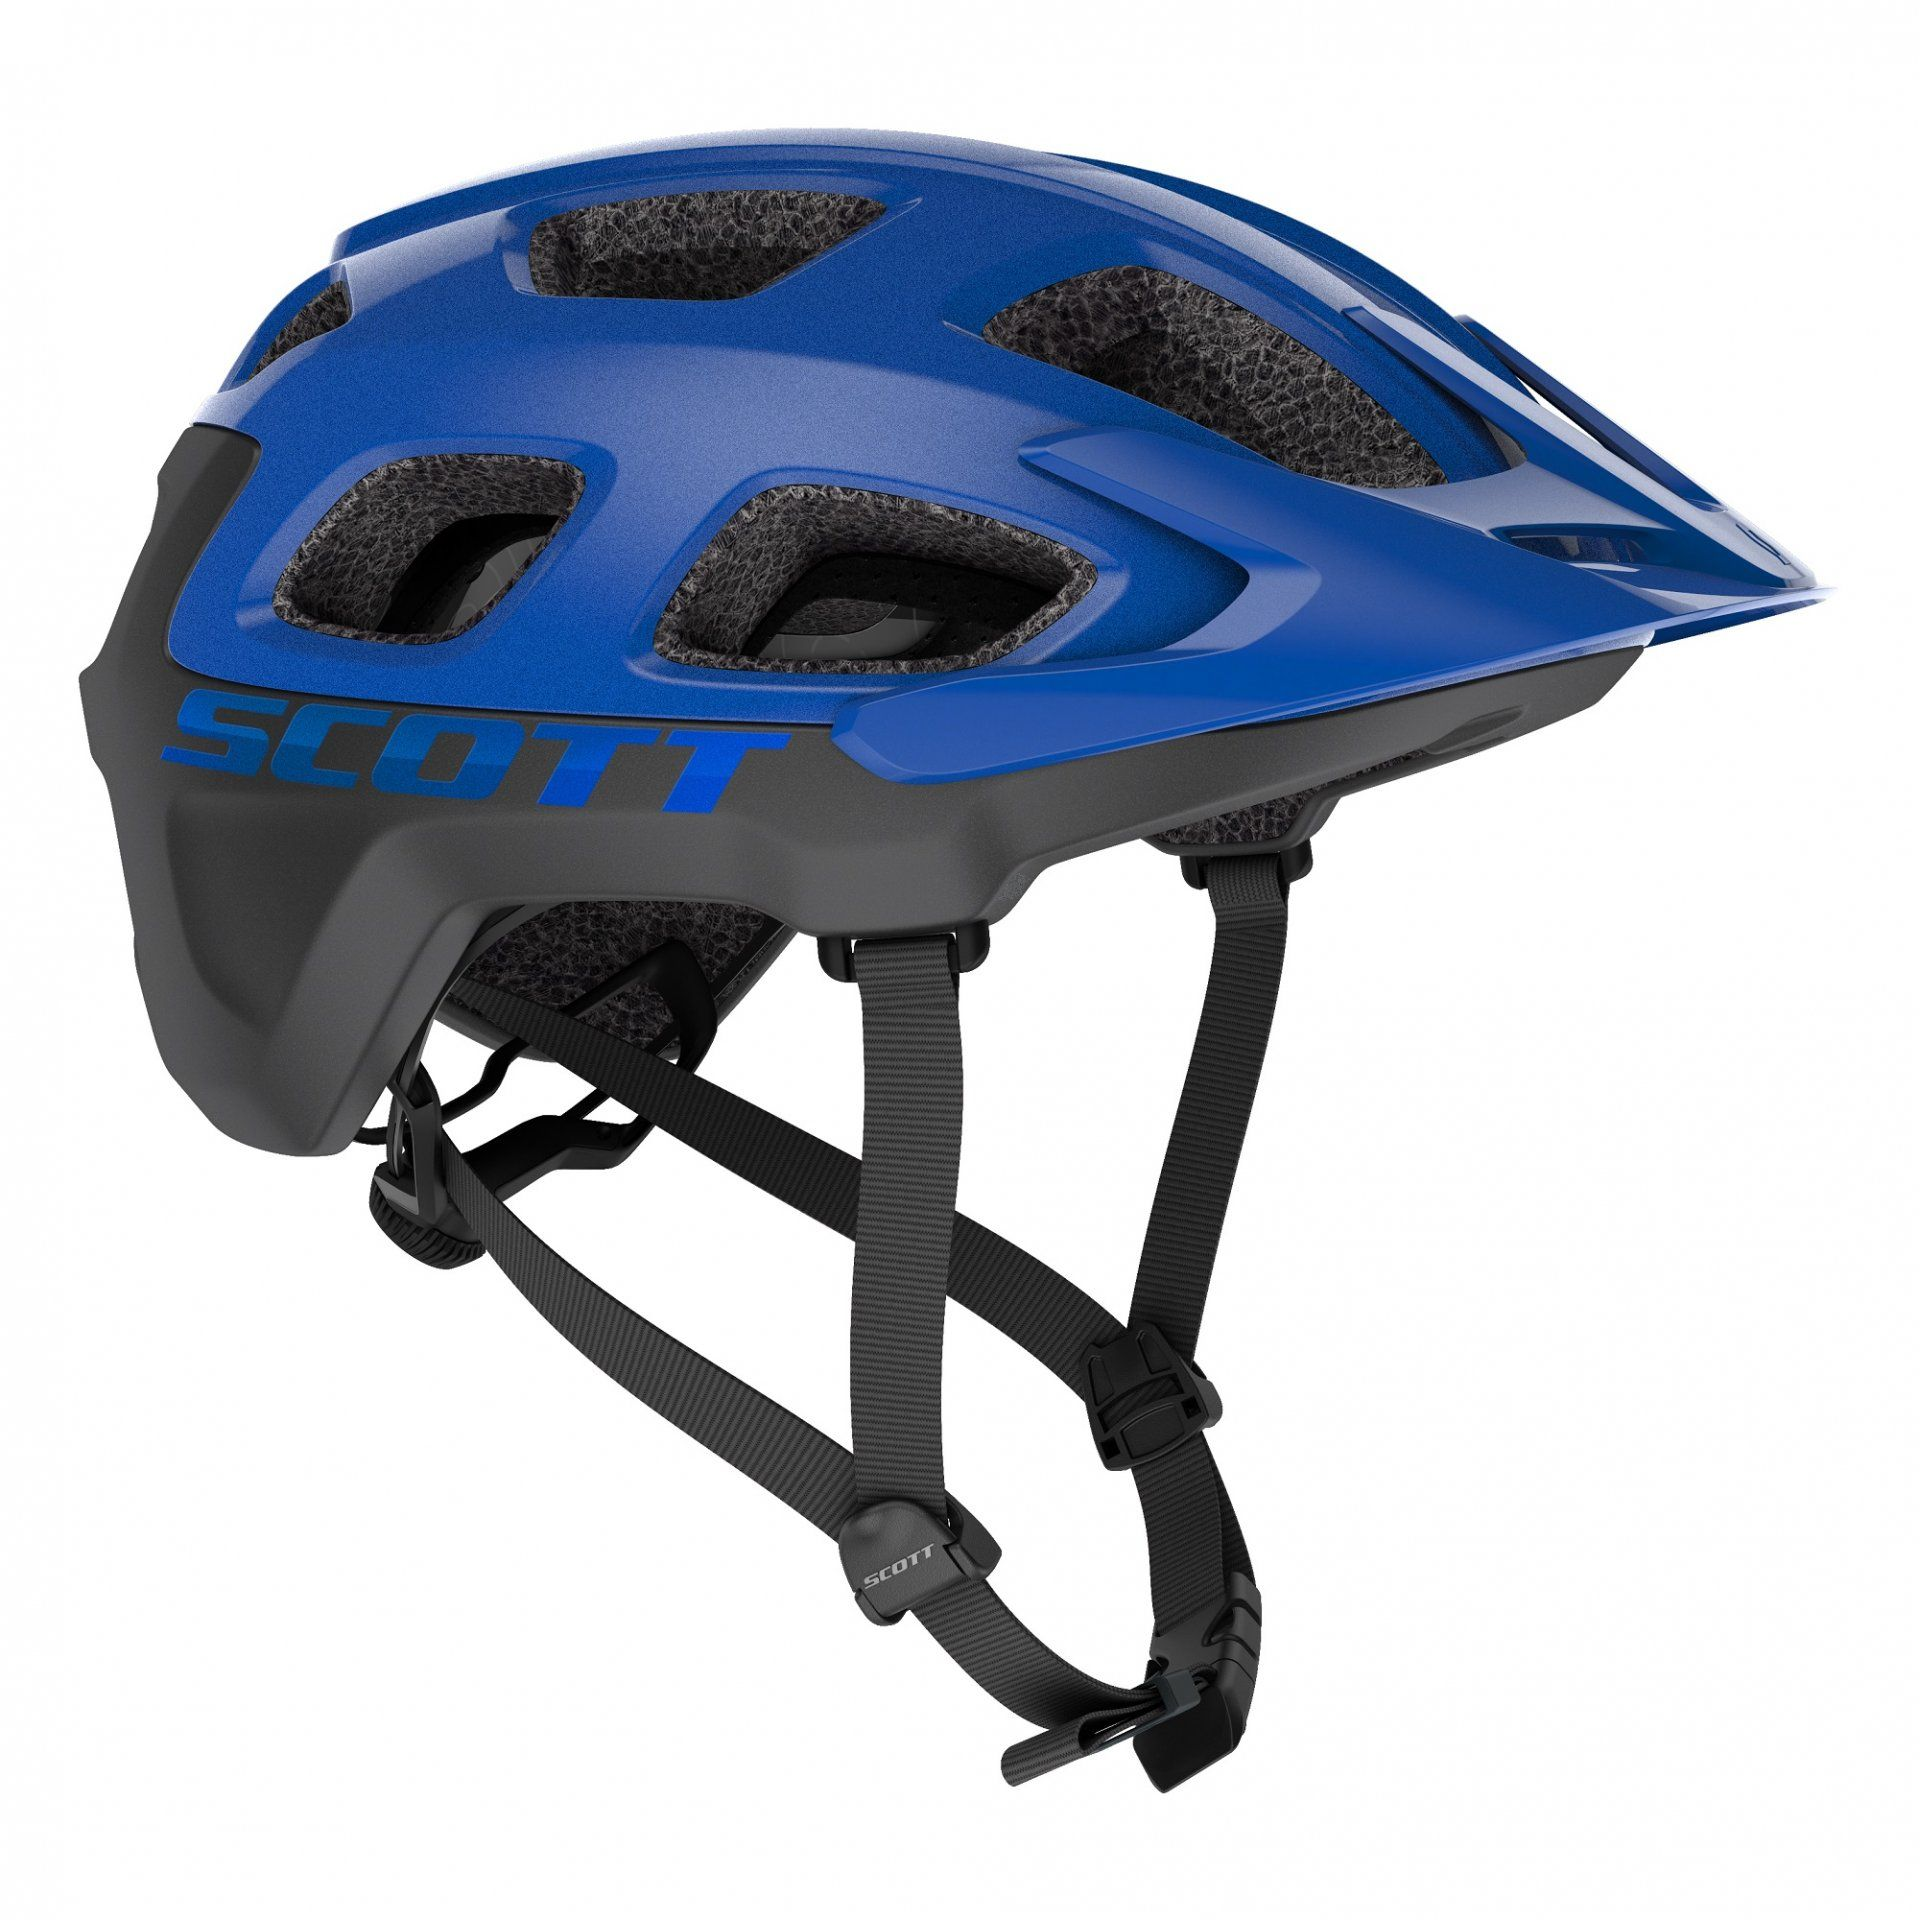 KASK ROWEROWY SCOTT VIVO PLUS 275202 SMURPLE BLUE